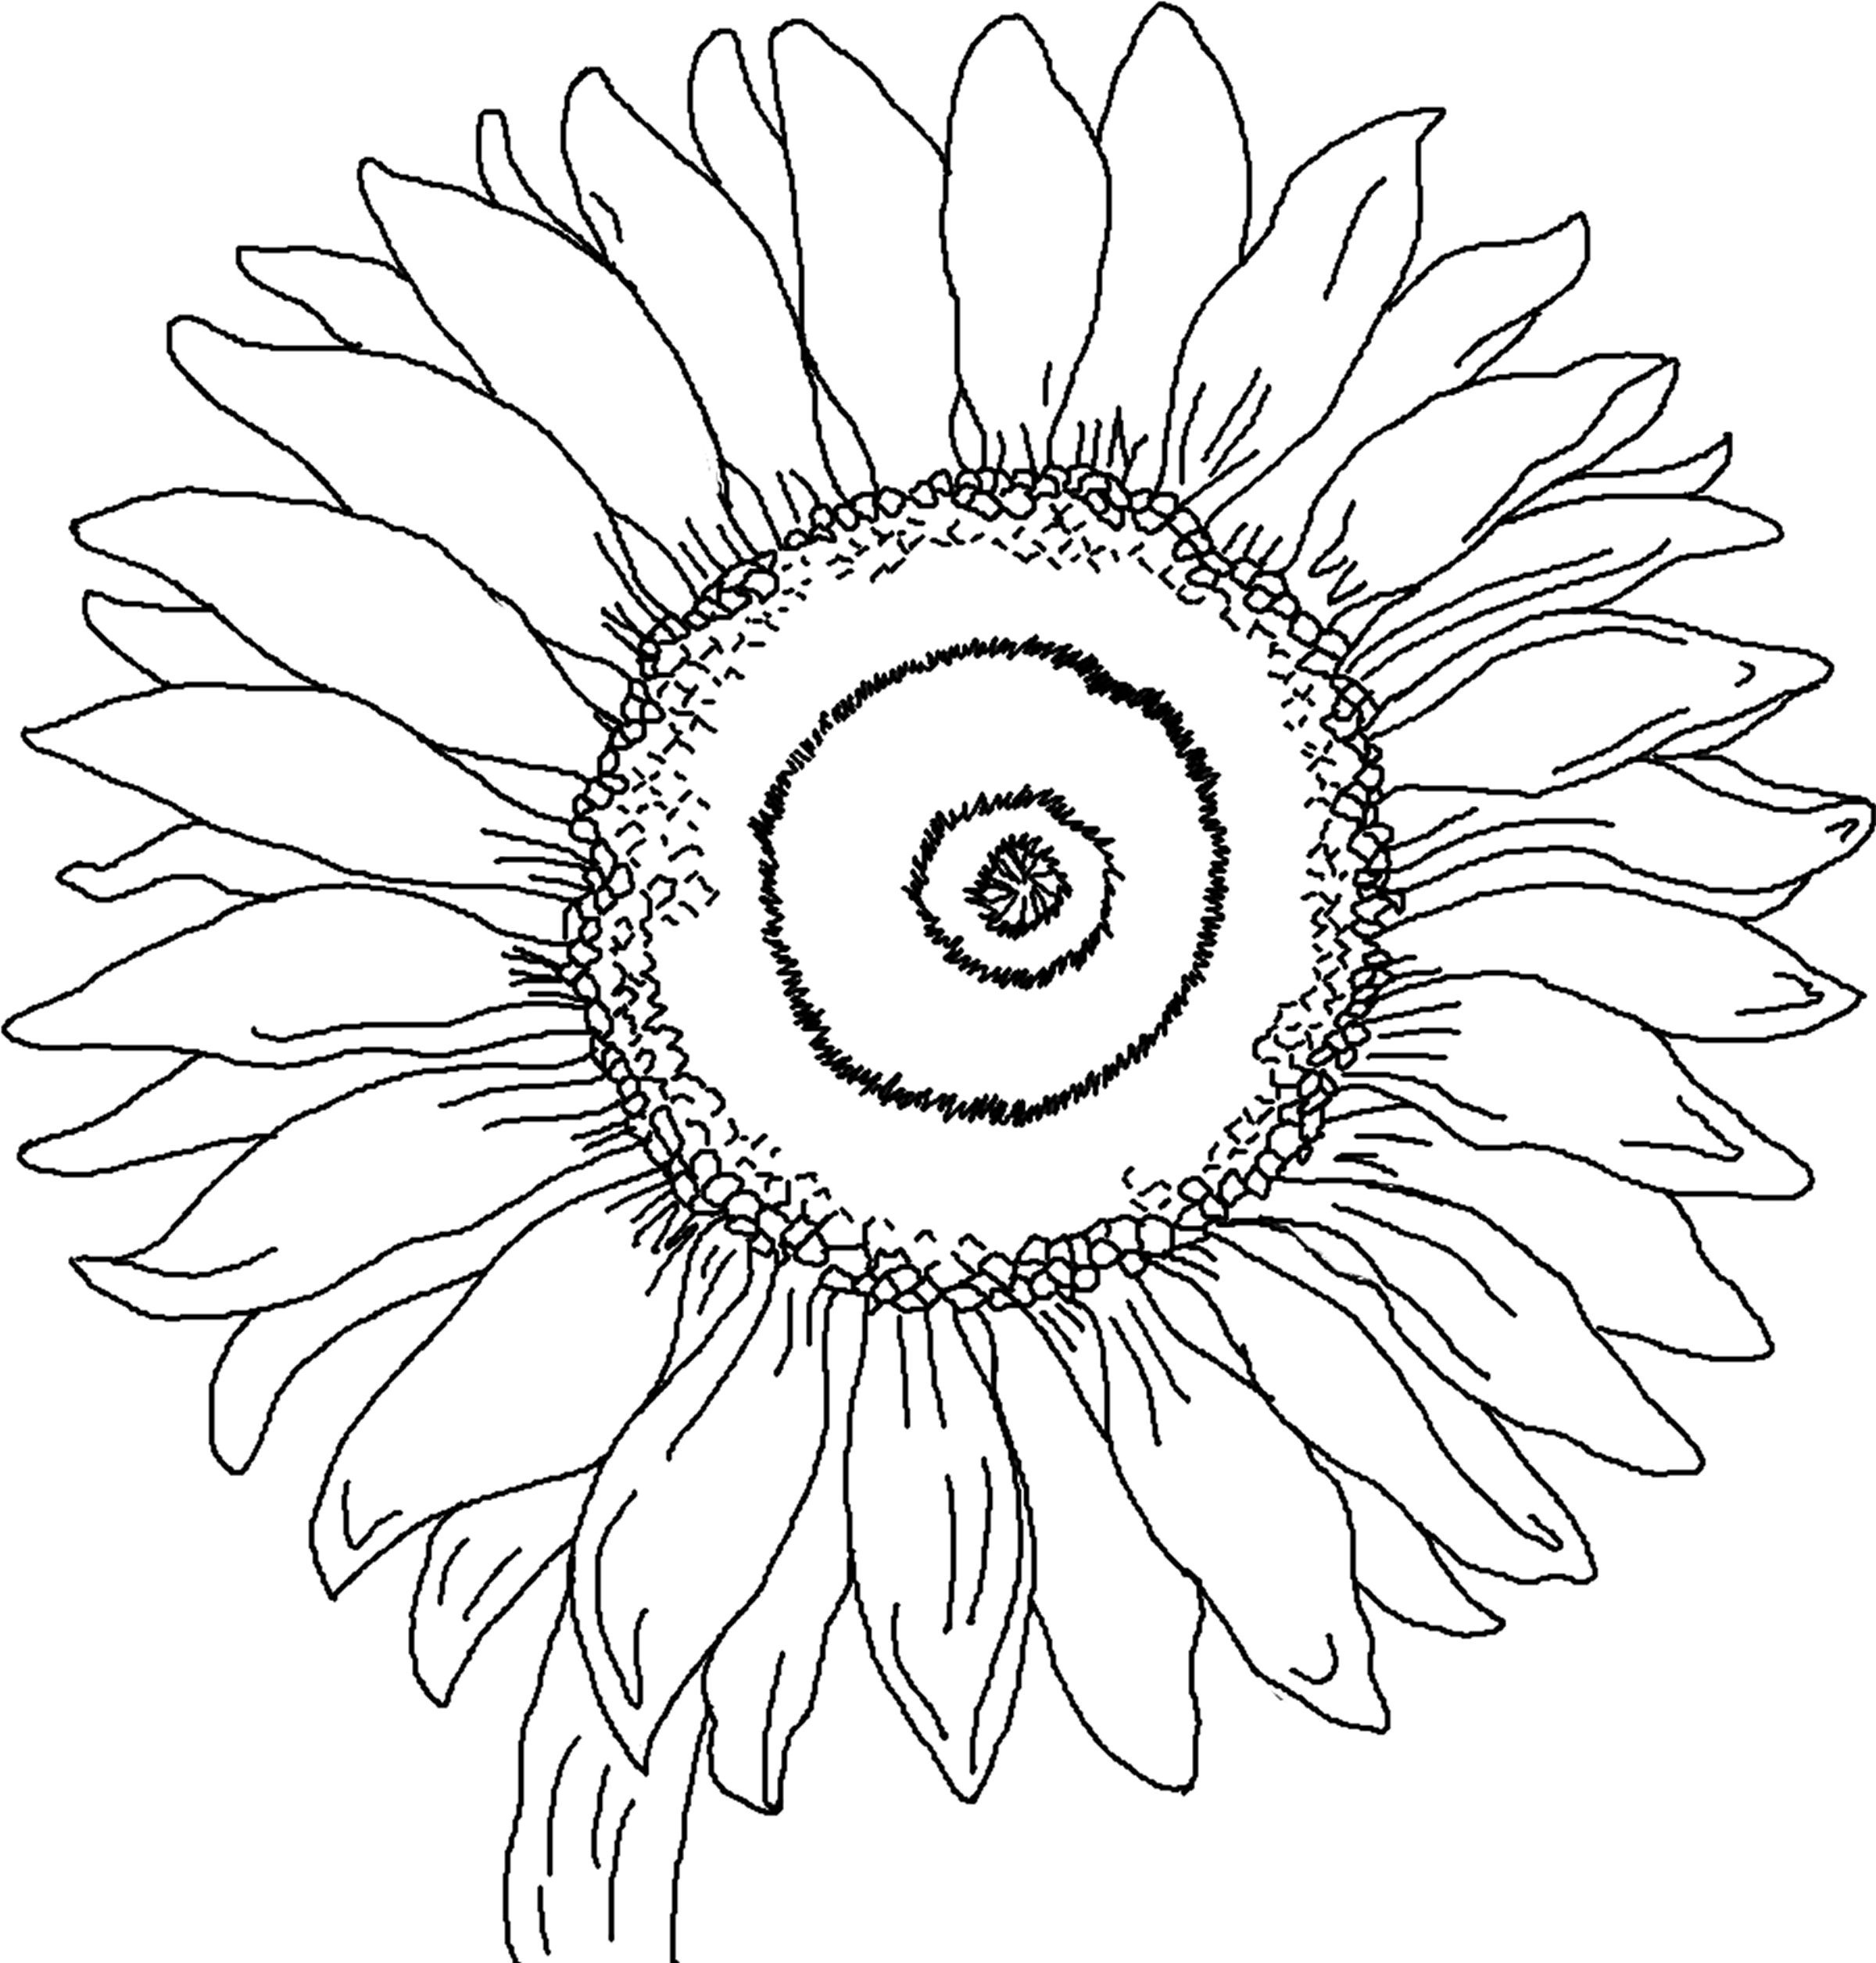 sunflower coloring pages to print sunflower coloring pages to download and print for free print coloring pages sunflower to